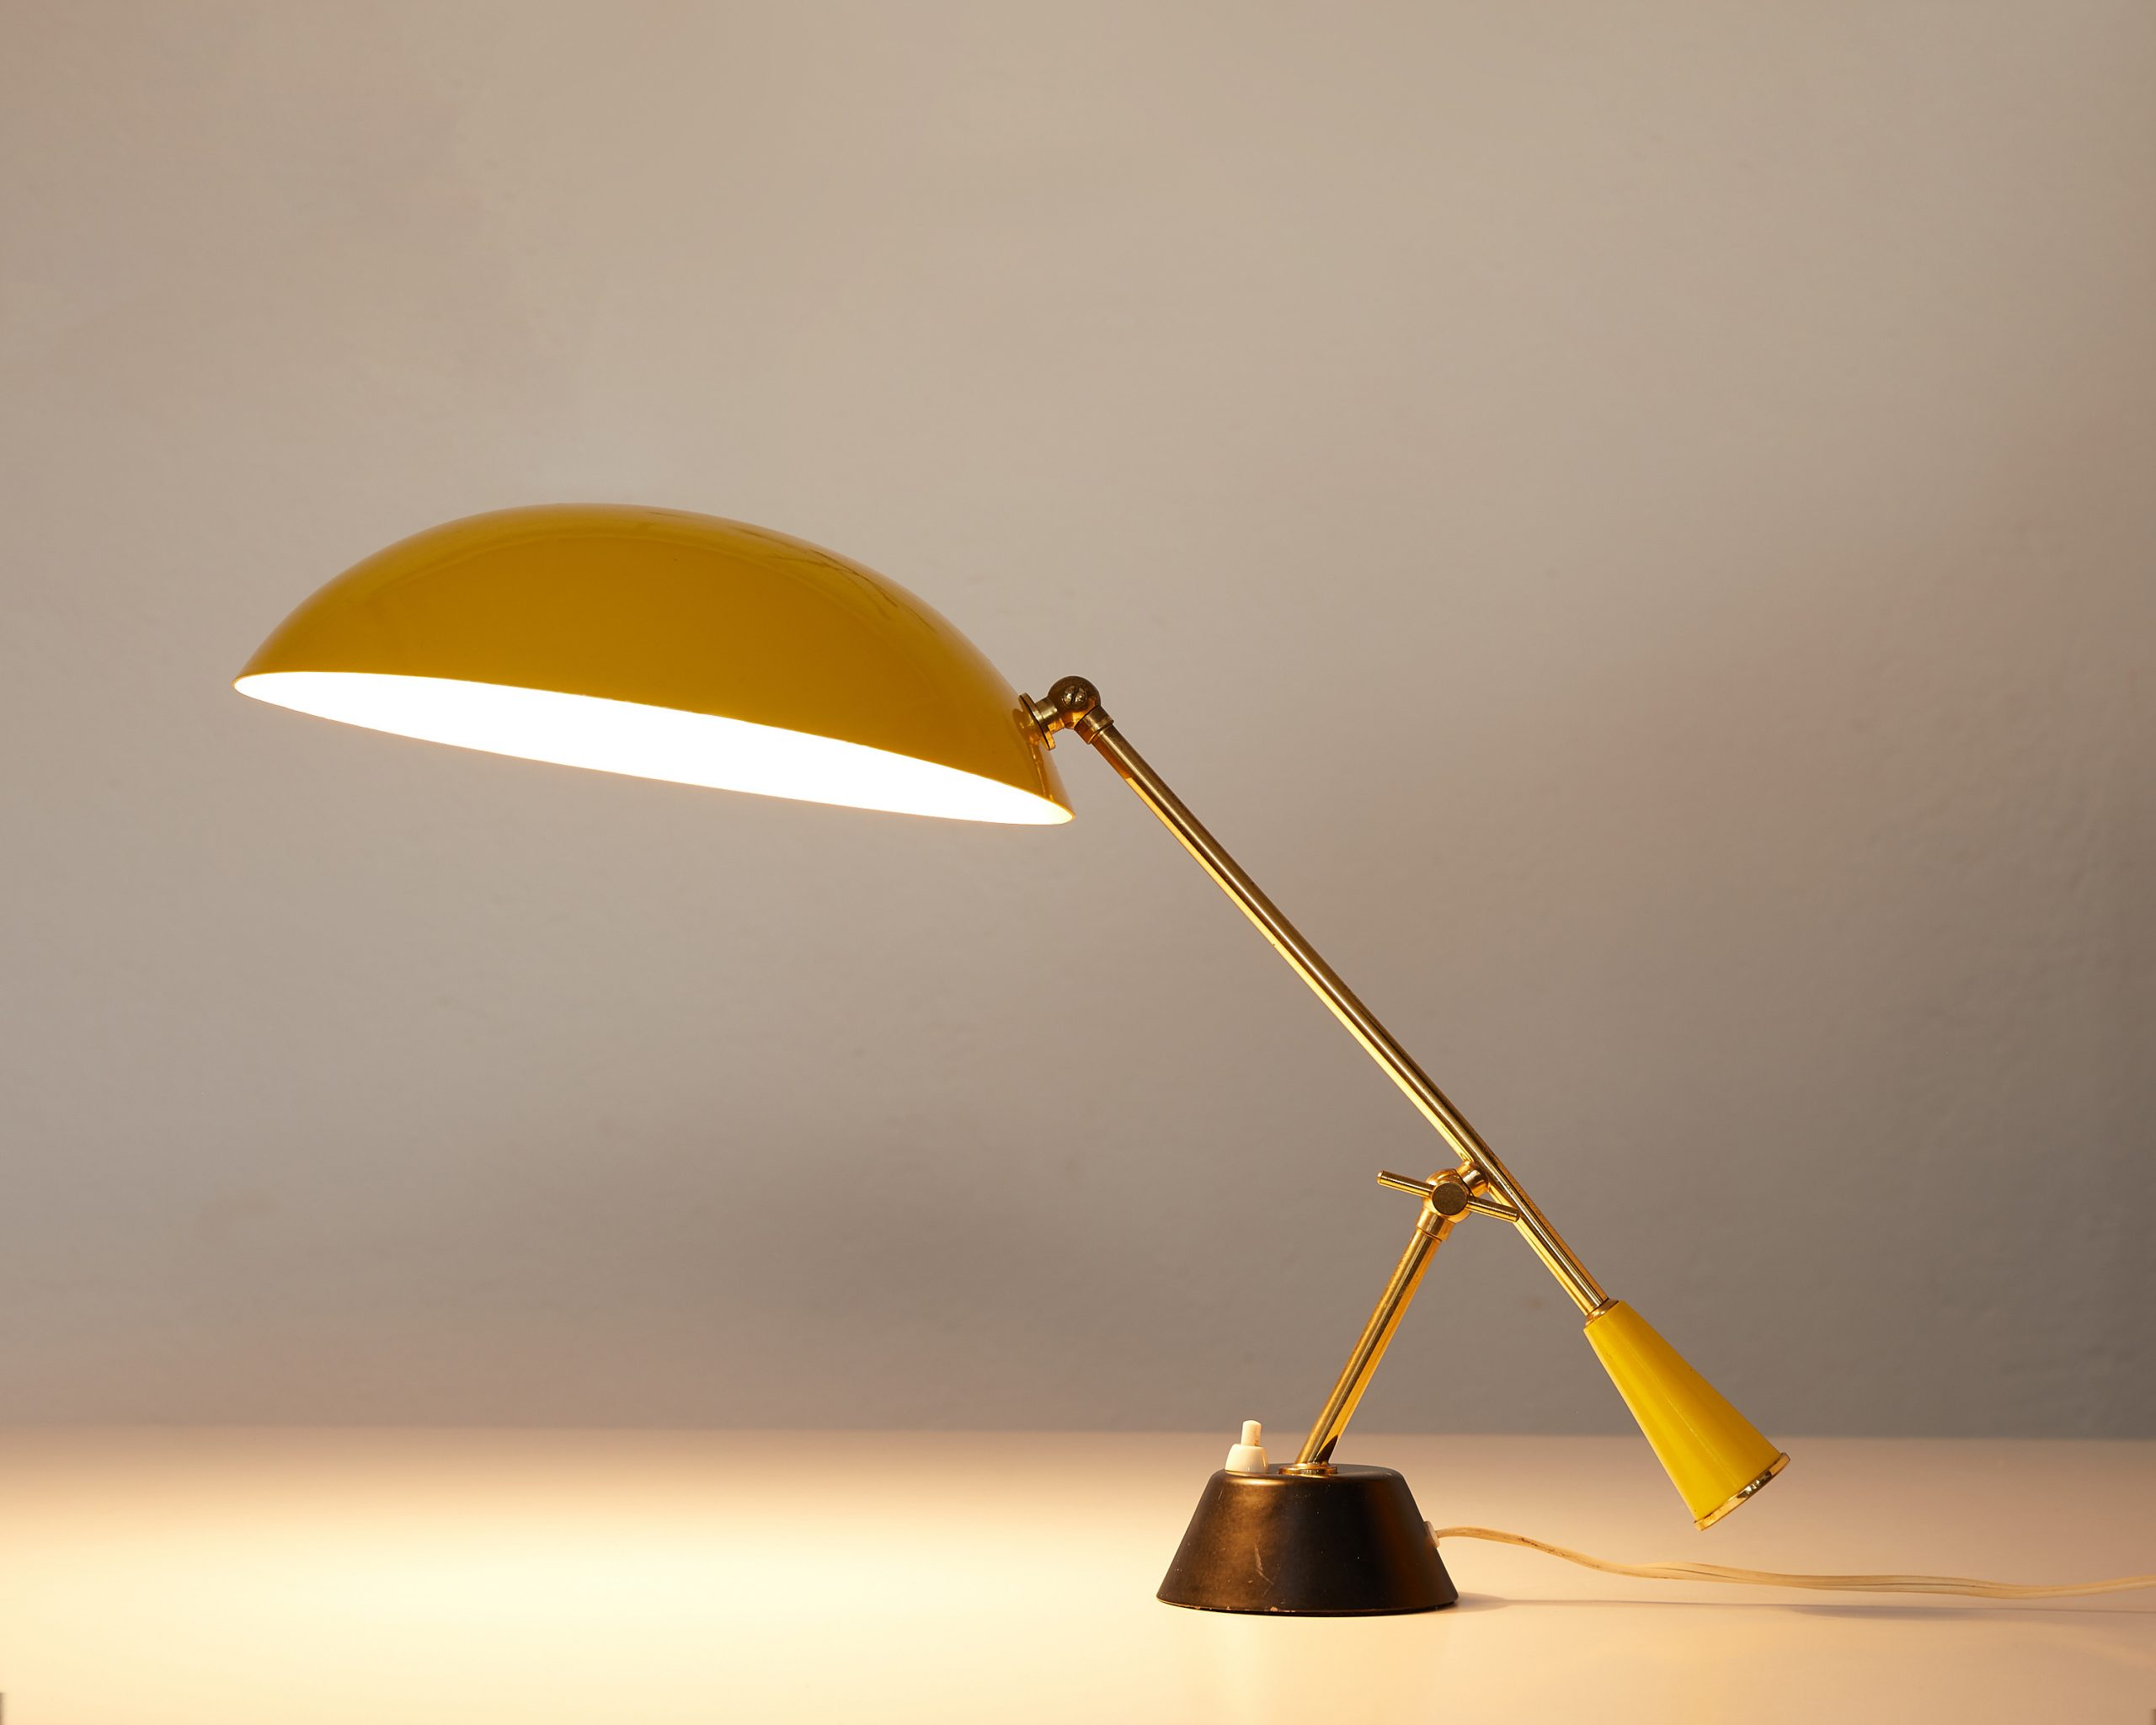 brass-and-yellow-lacquered-metal-table-lamp-with-counterweight-switzerland-1950-image-01